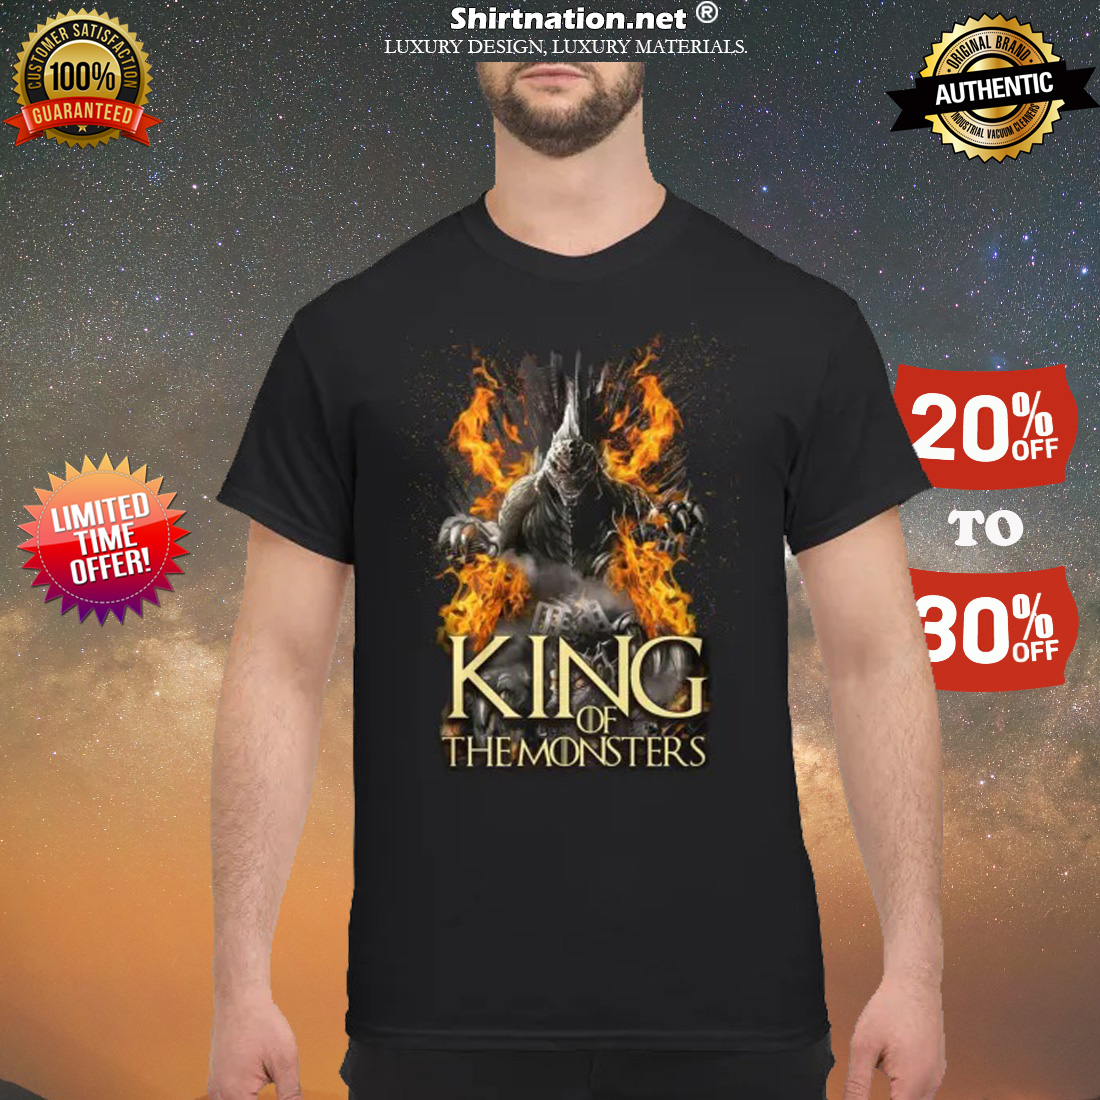 king of the monsters shirt